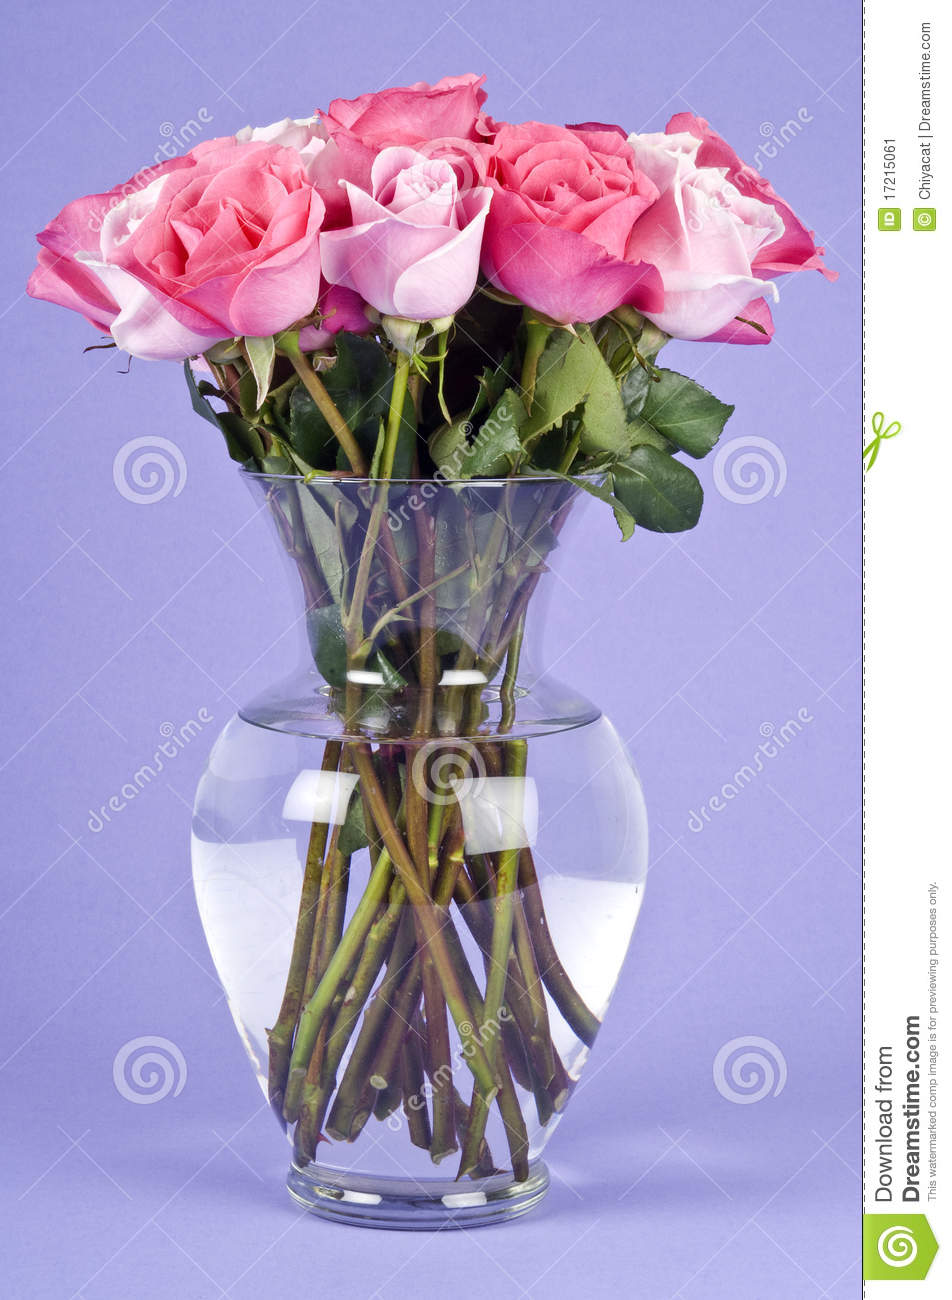 Bouquet Of Pink Roses In A Glass Vase Stock Image Image